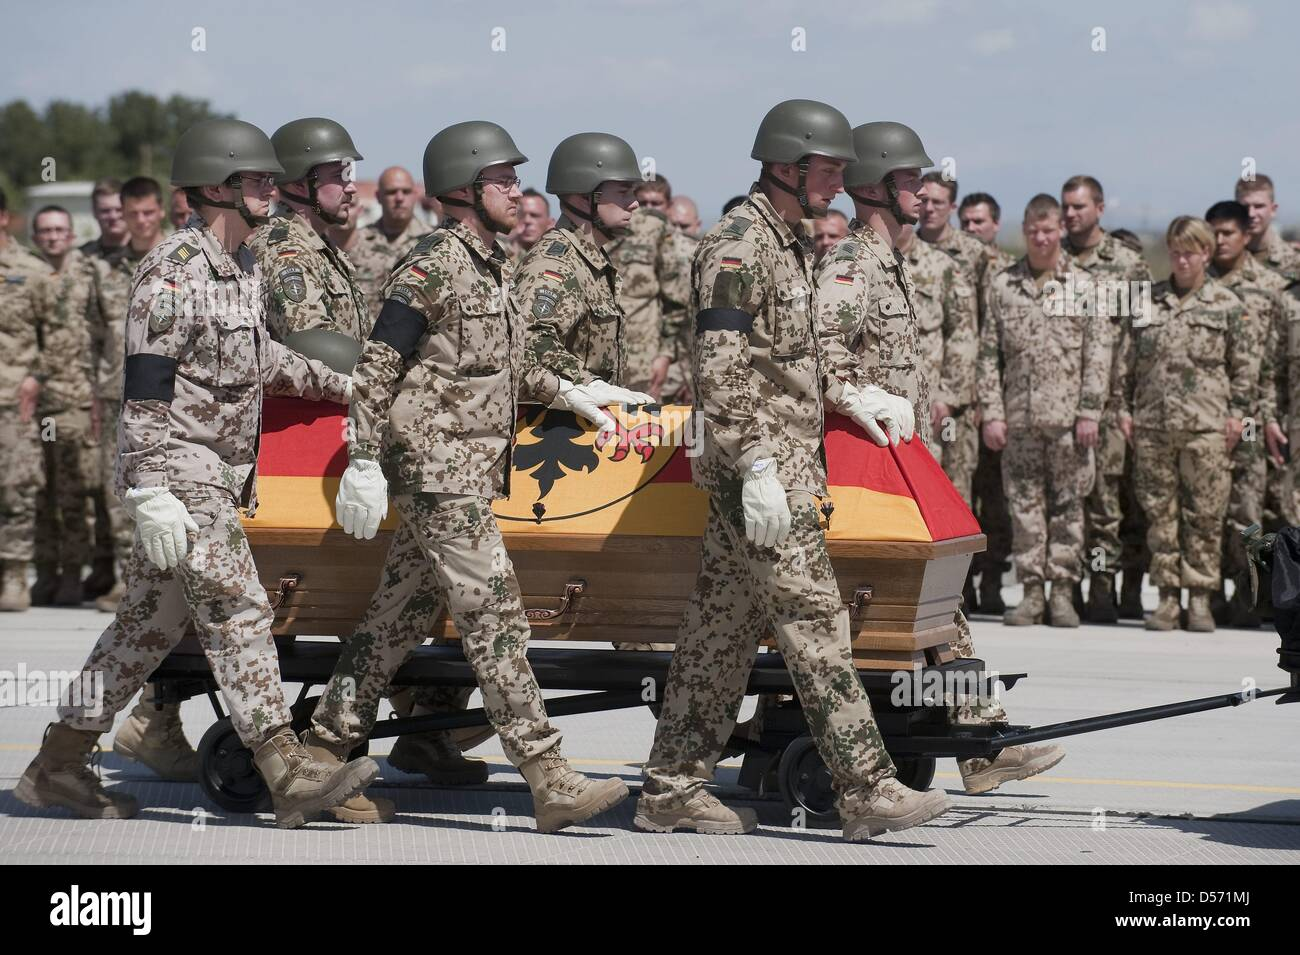 German Bundeswehr soldiers carry the coffin of a killed soldier at the airport in Termez, Uzbekistan, 04 April 2010. - Stock Image